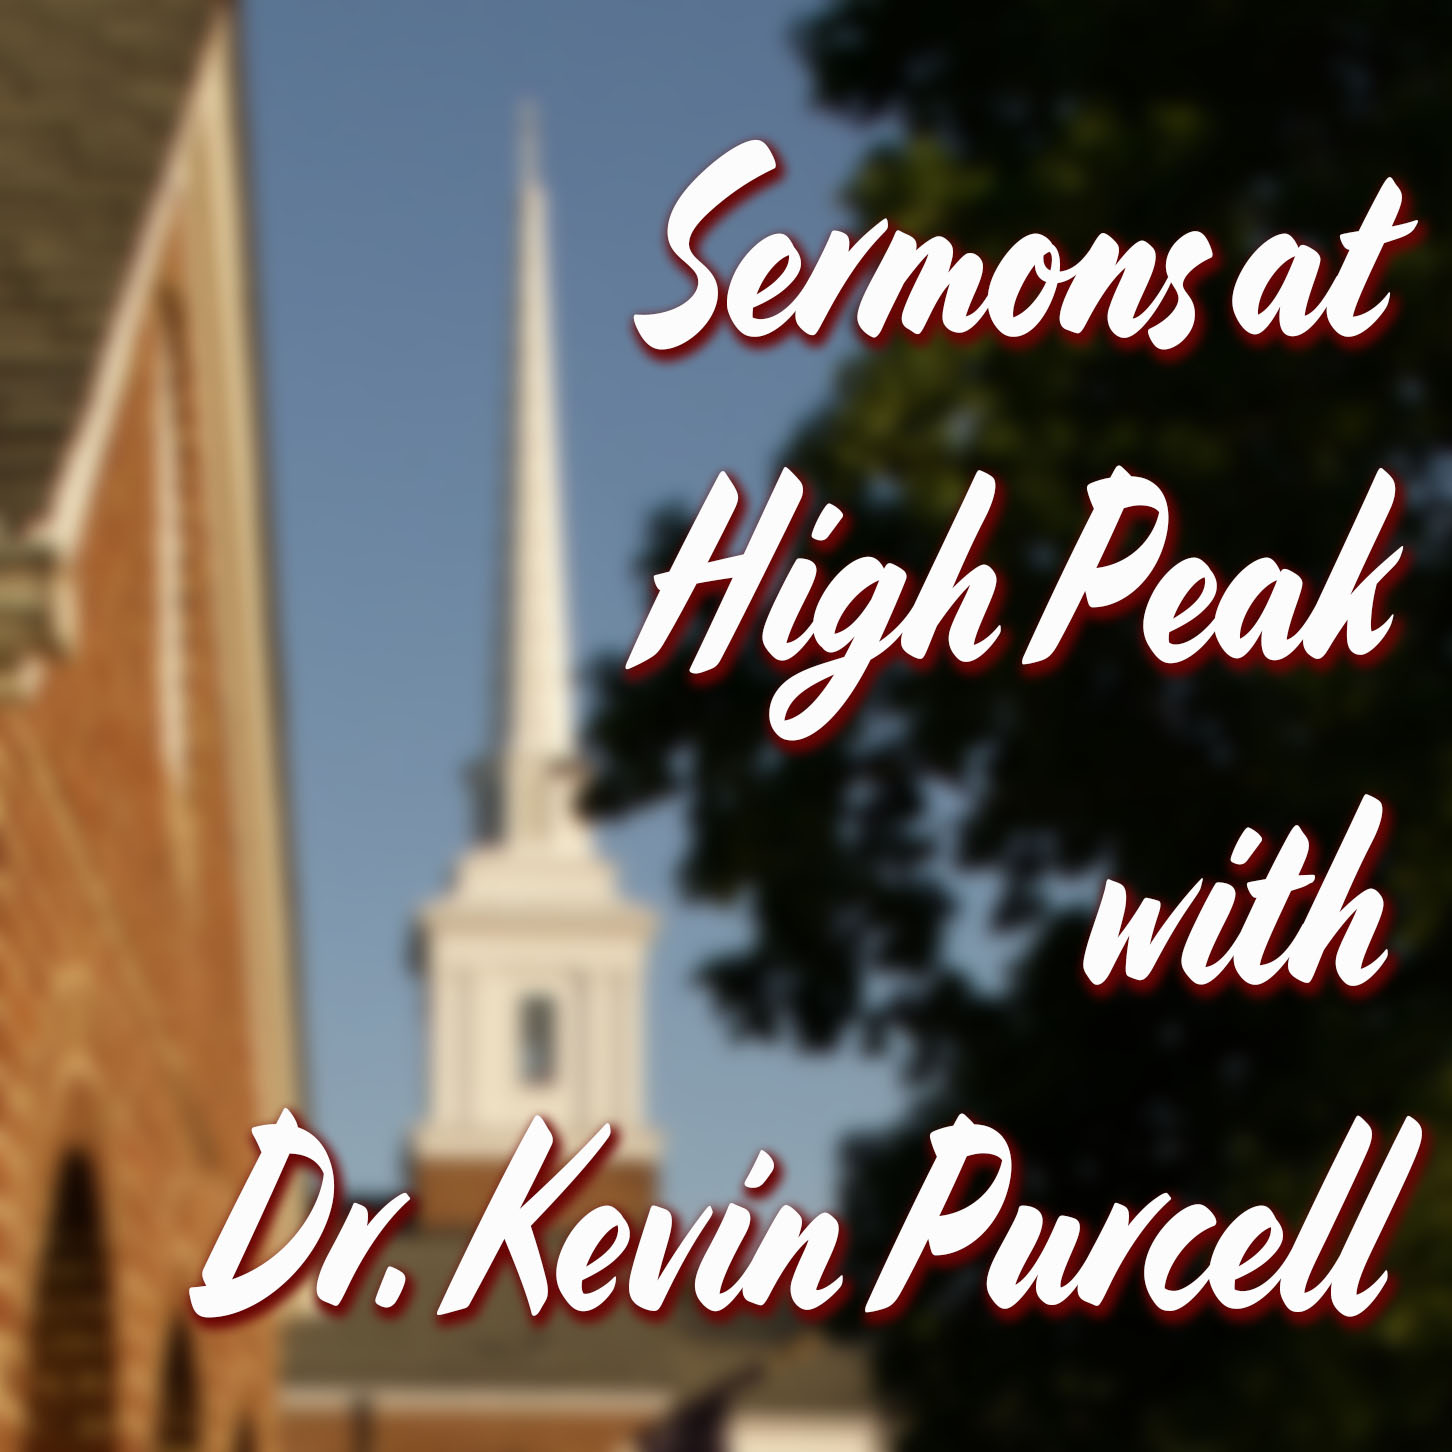 Sermons at High Peak Podcast